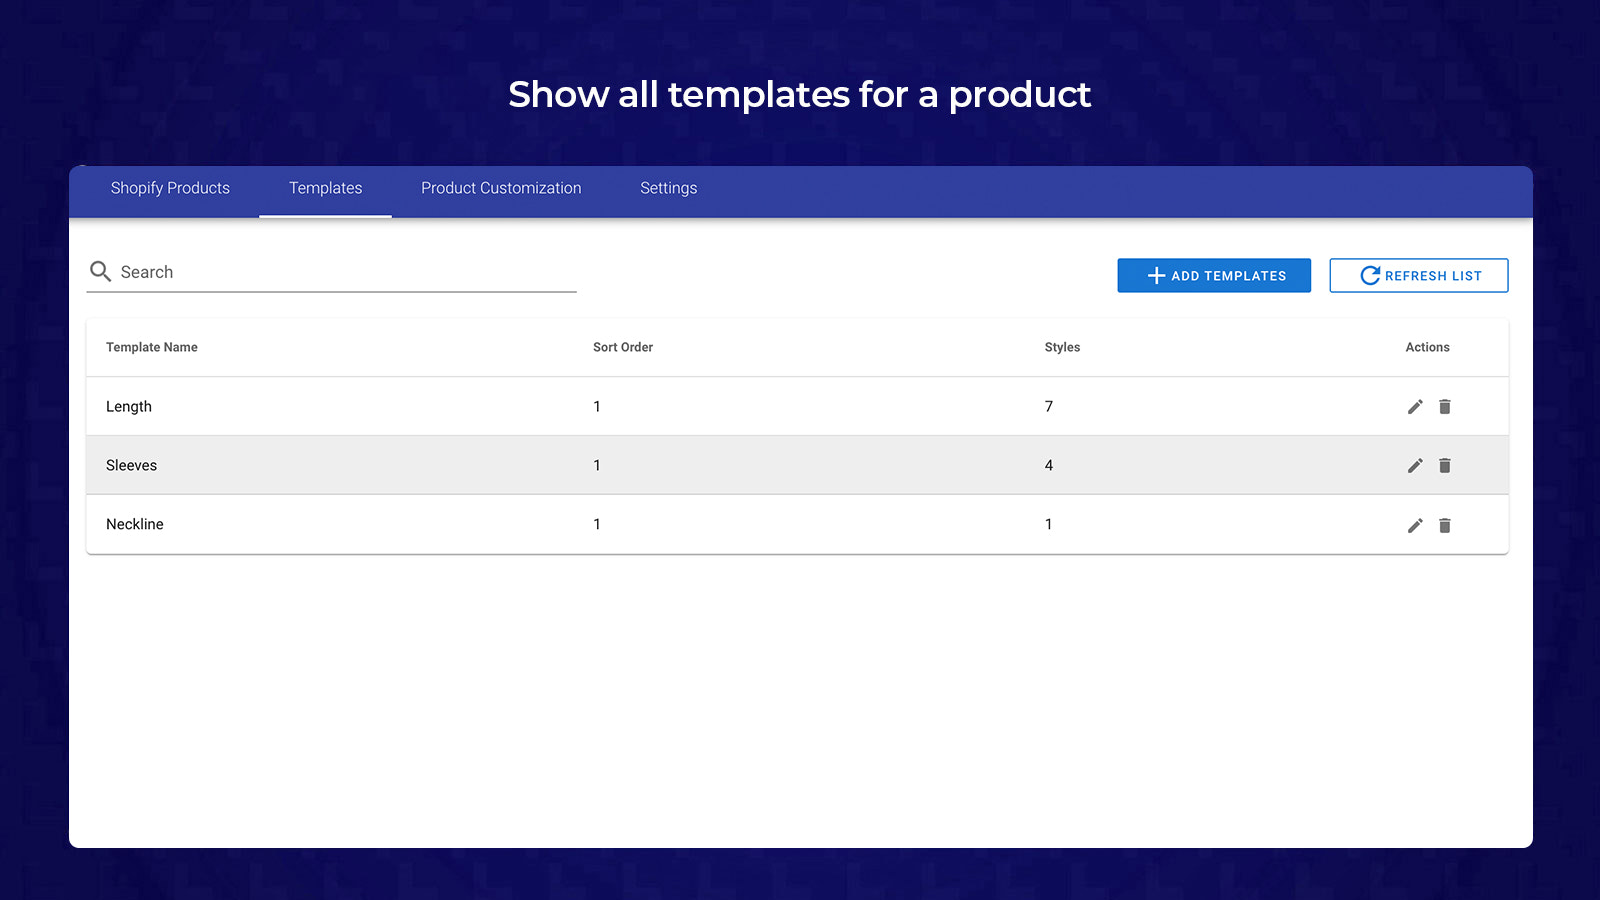 3- Show all templates for a product